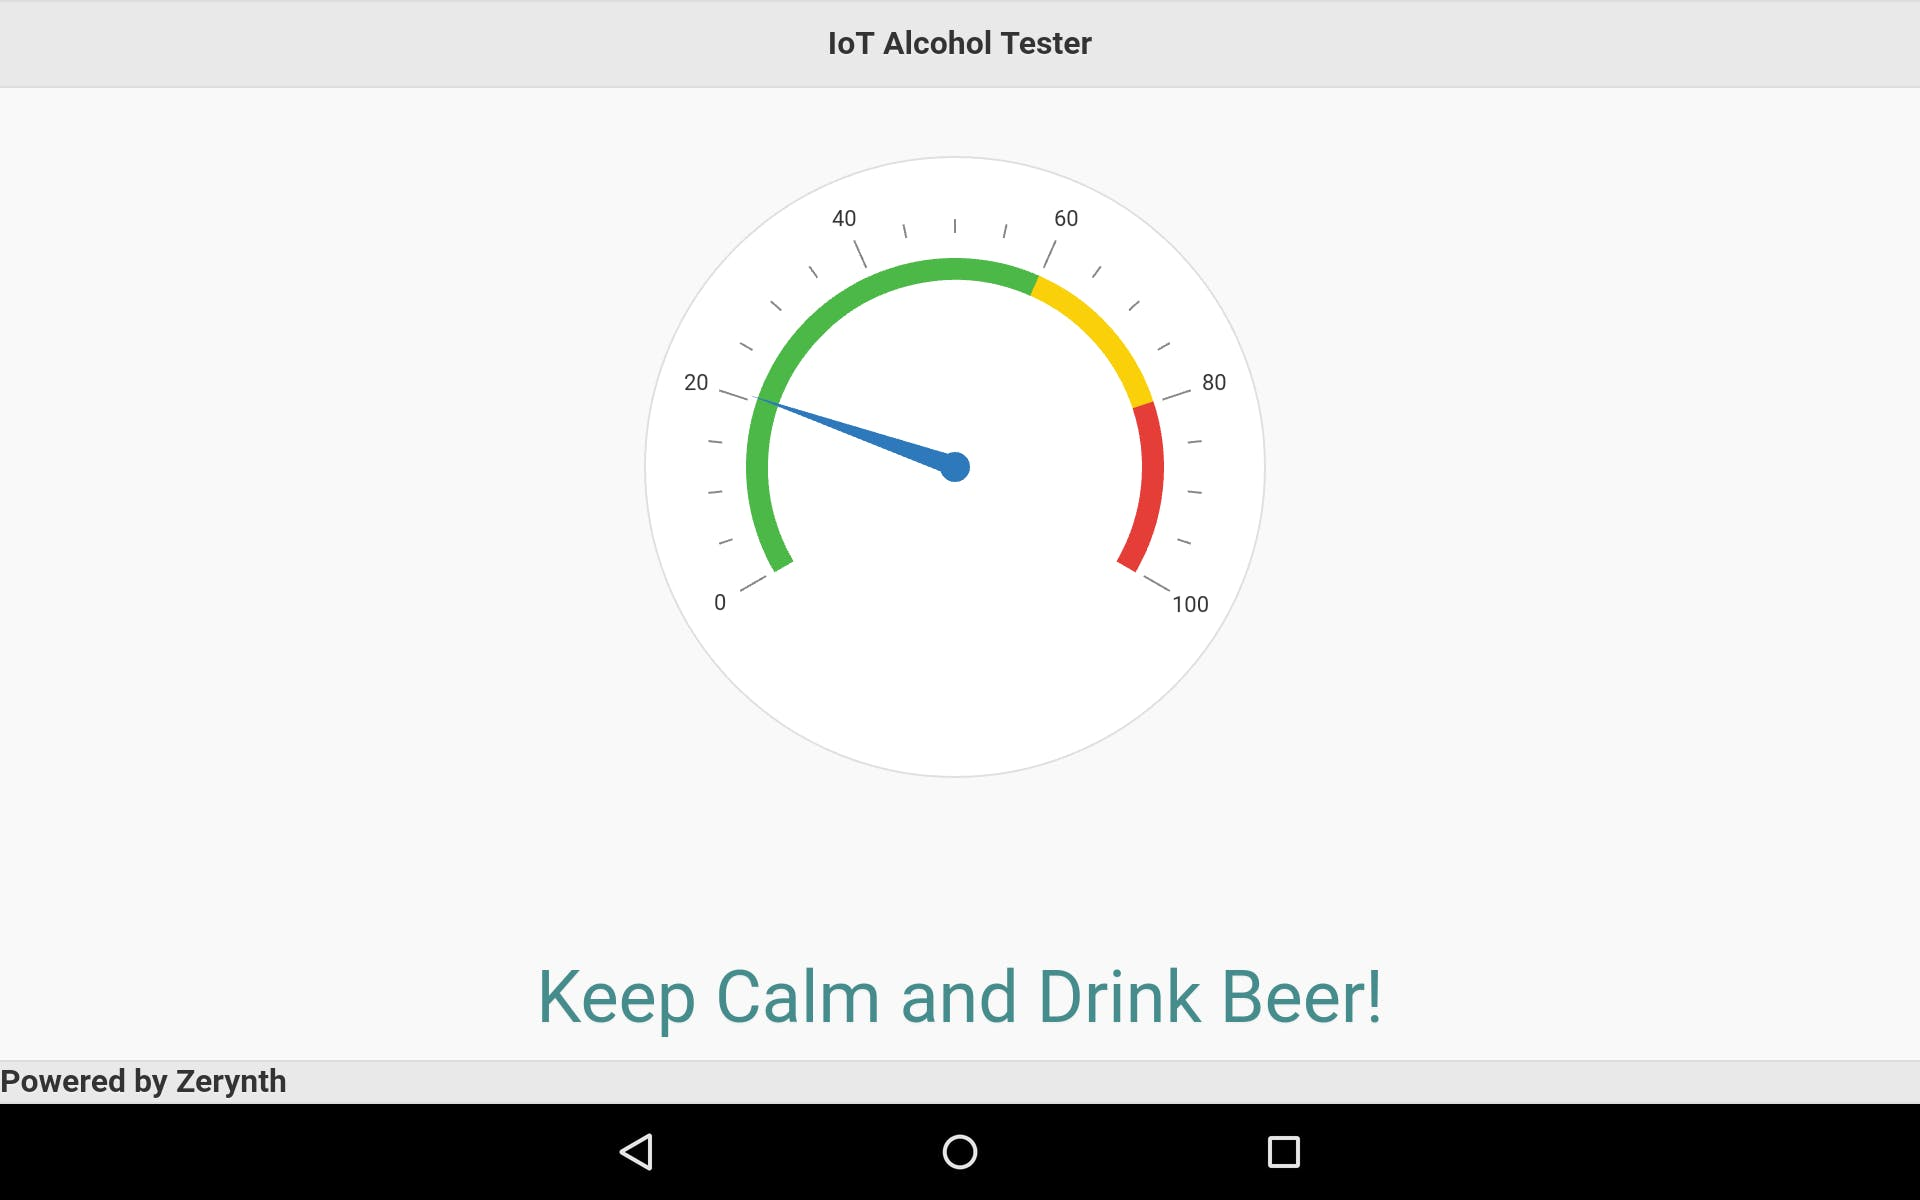 Zerynth App - Keep Calm and Drink Beer!